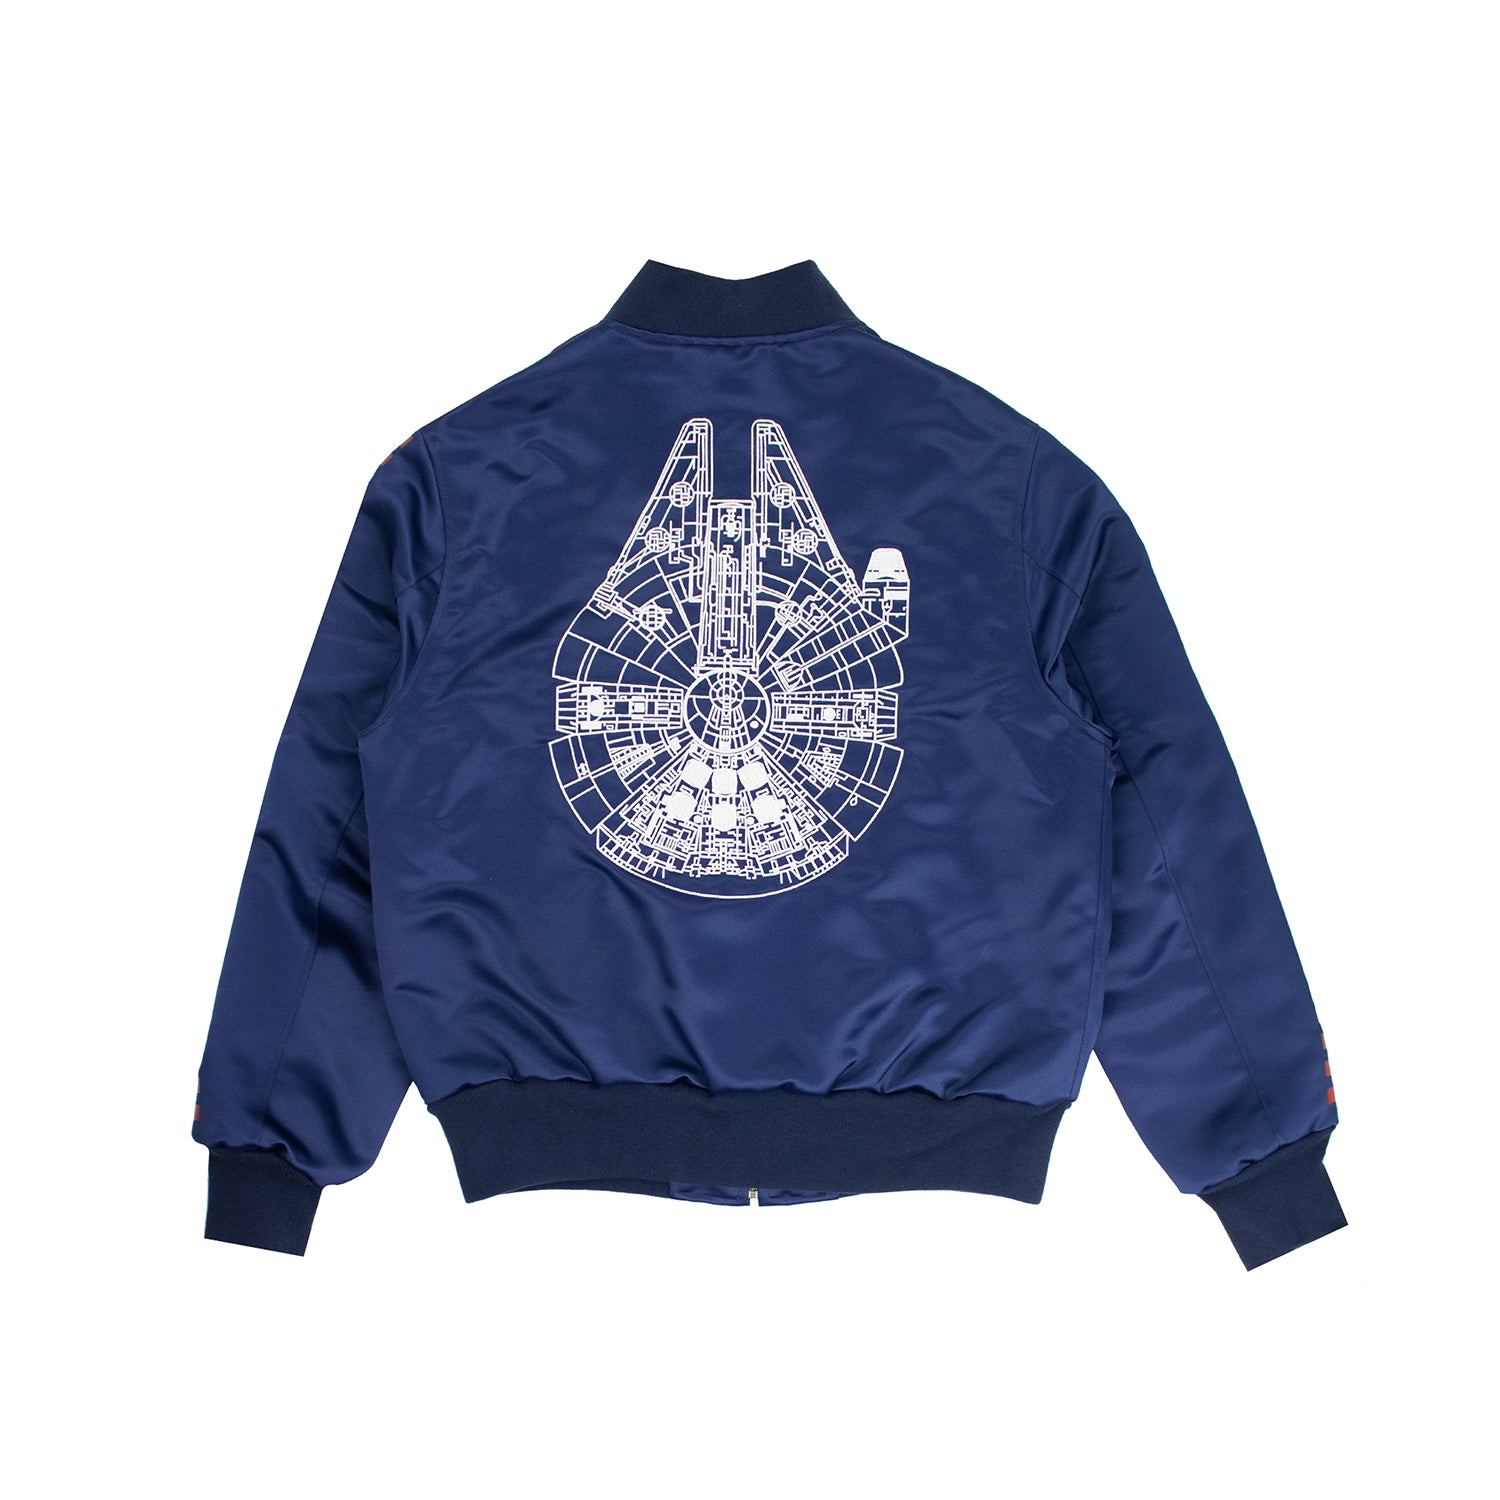 STAR WARS X BBC BLOODSTRIPE JACKET